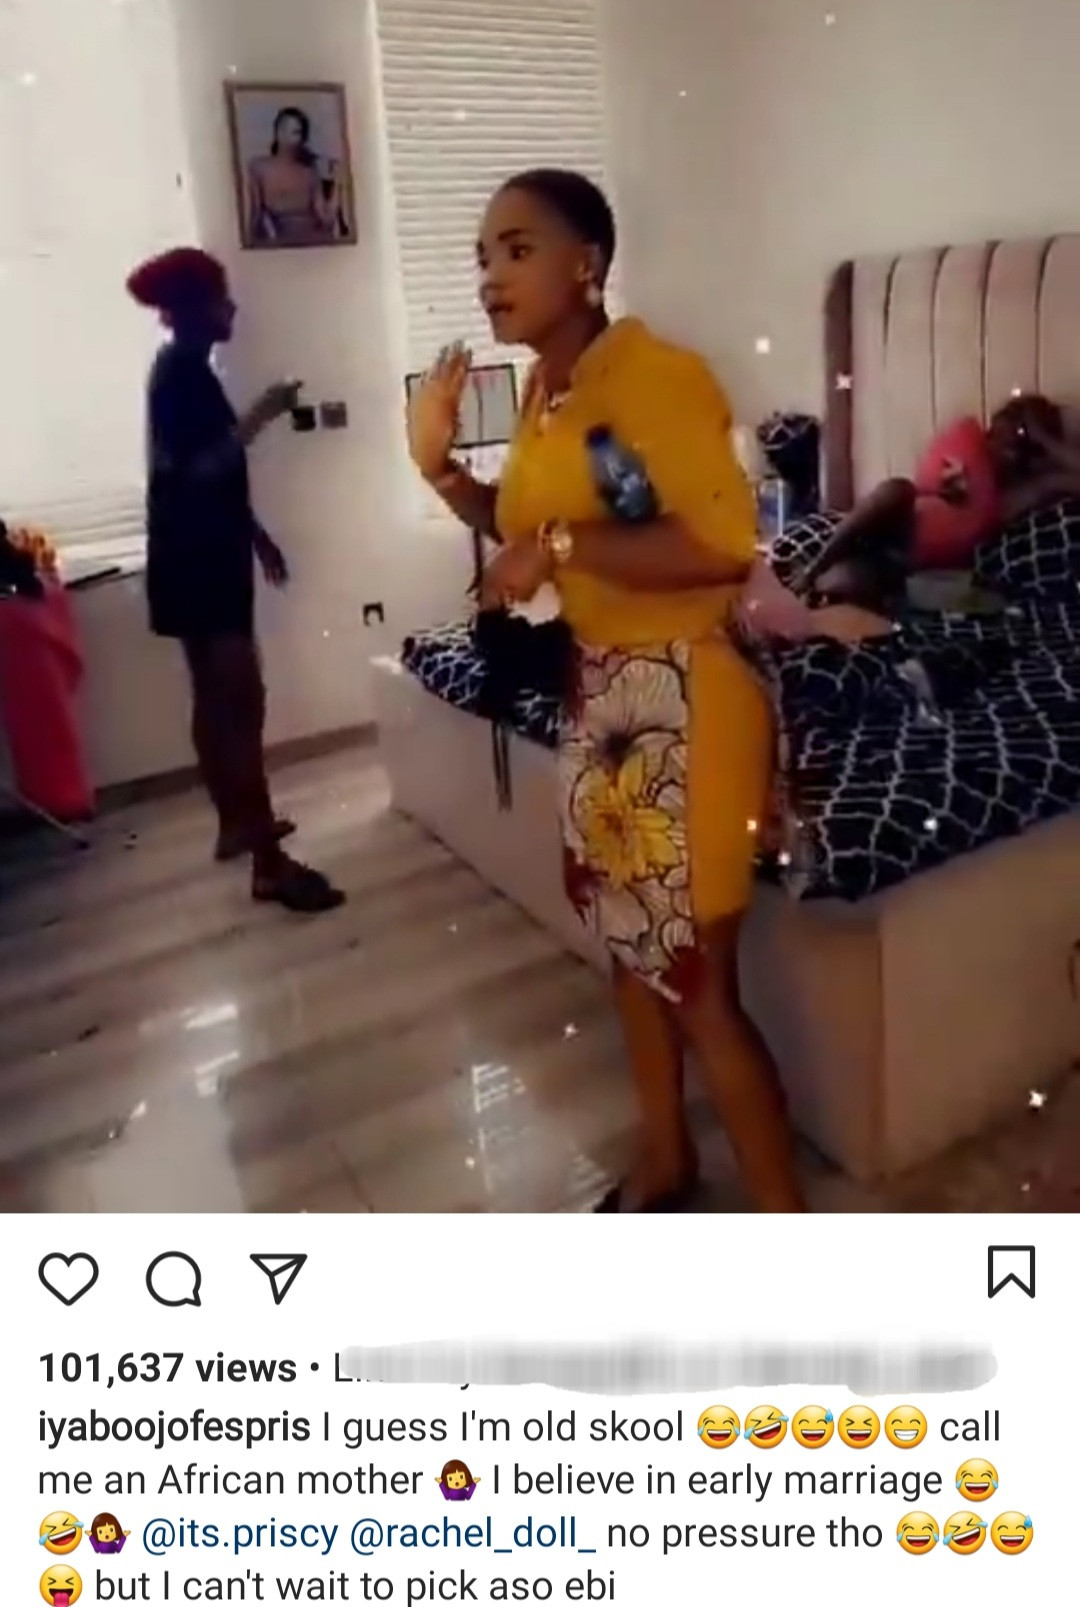 Actress, Iyabo Ojo tells her daughter she must be engaged at 23, married at 24 and have her first child when she